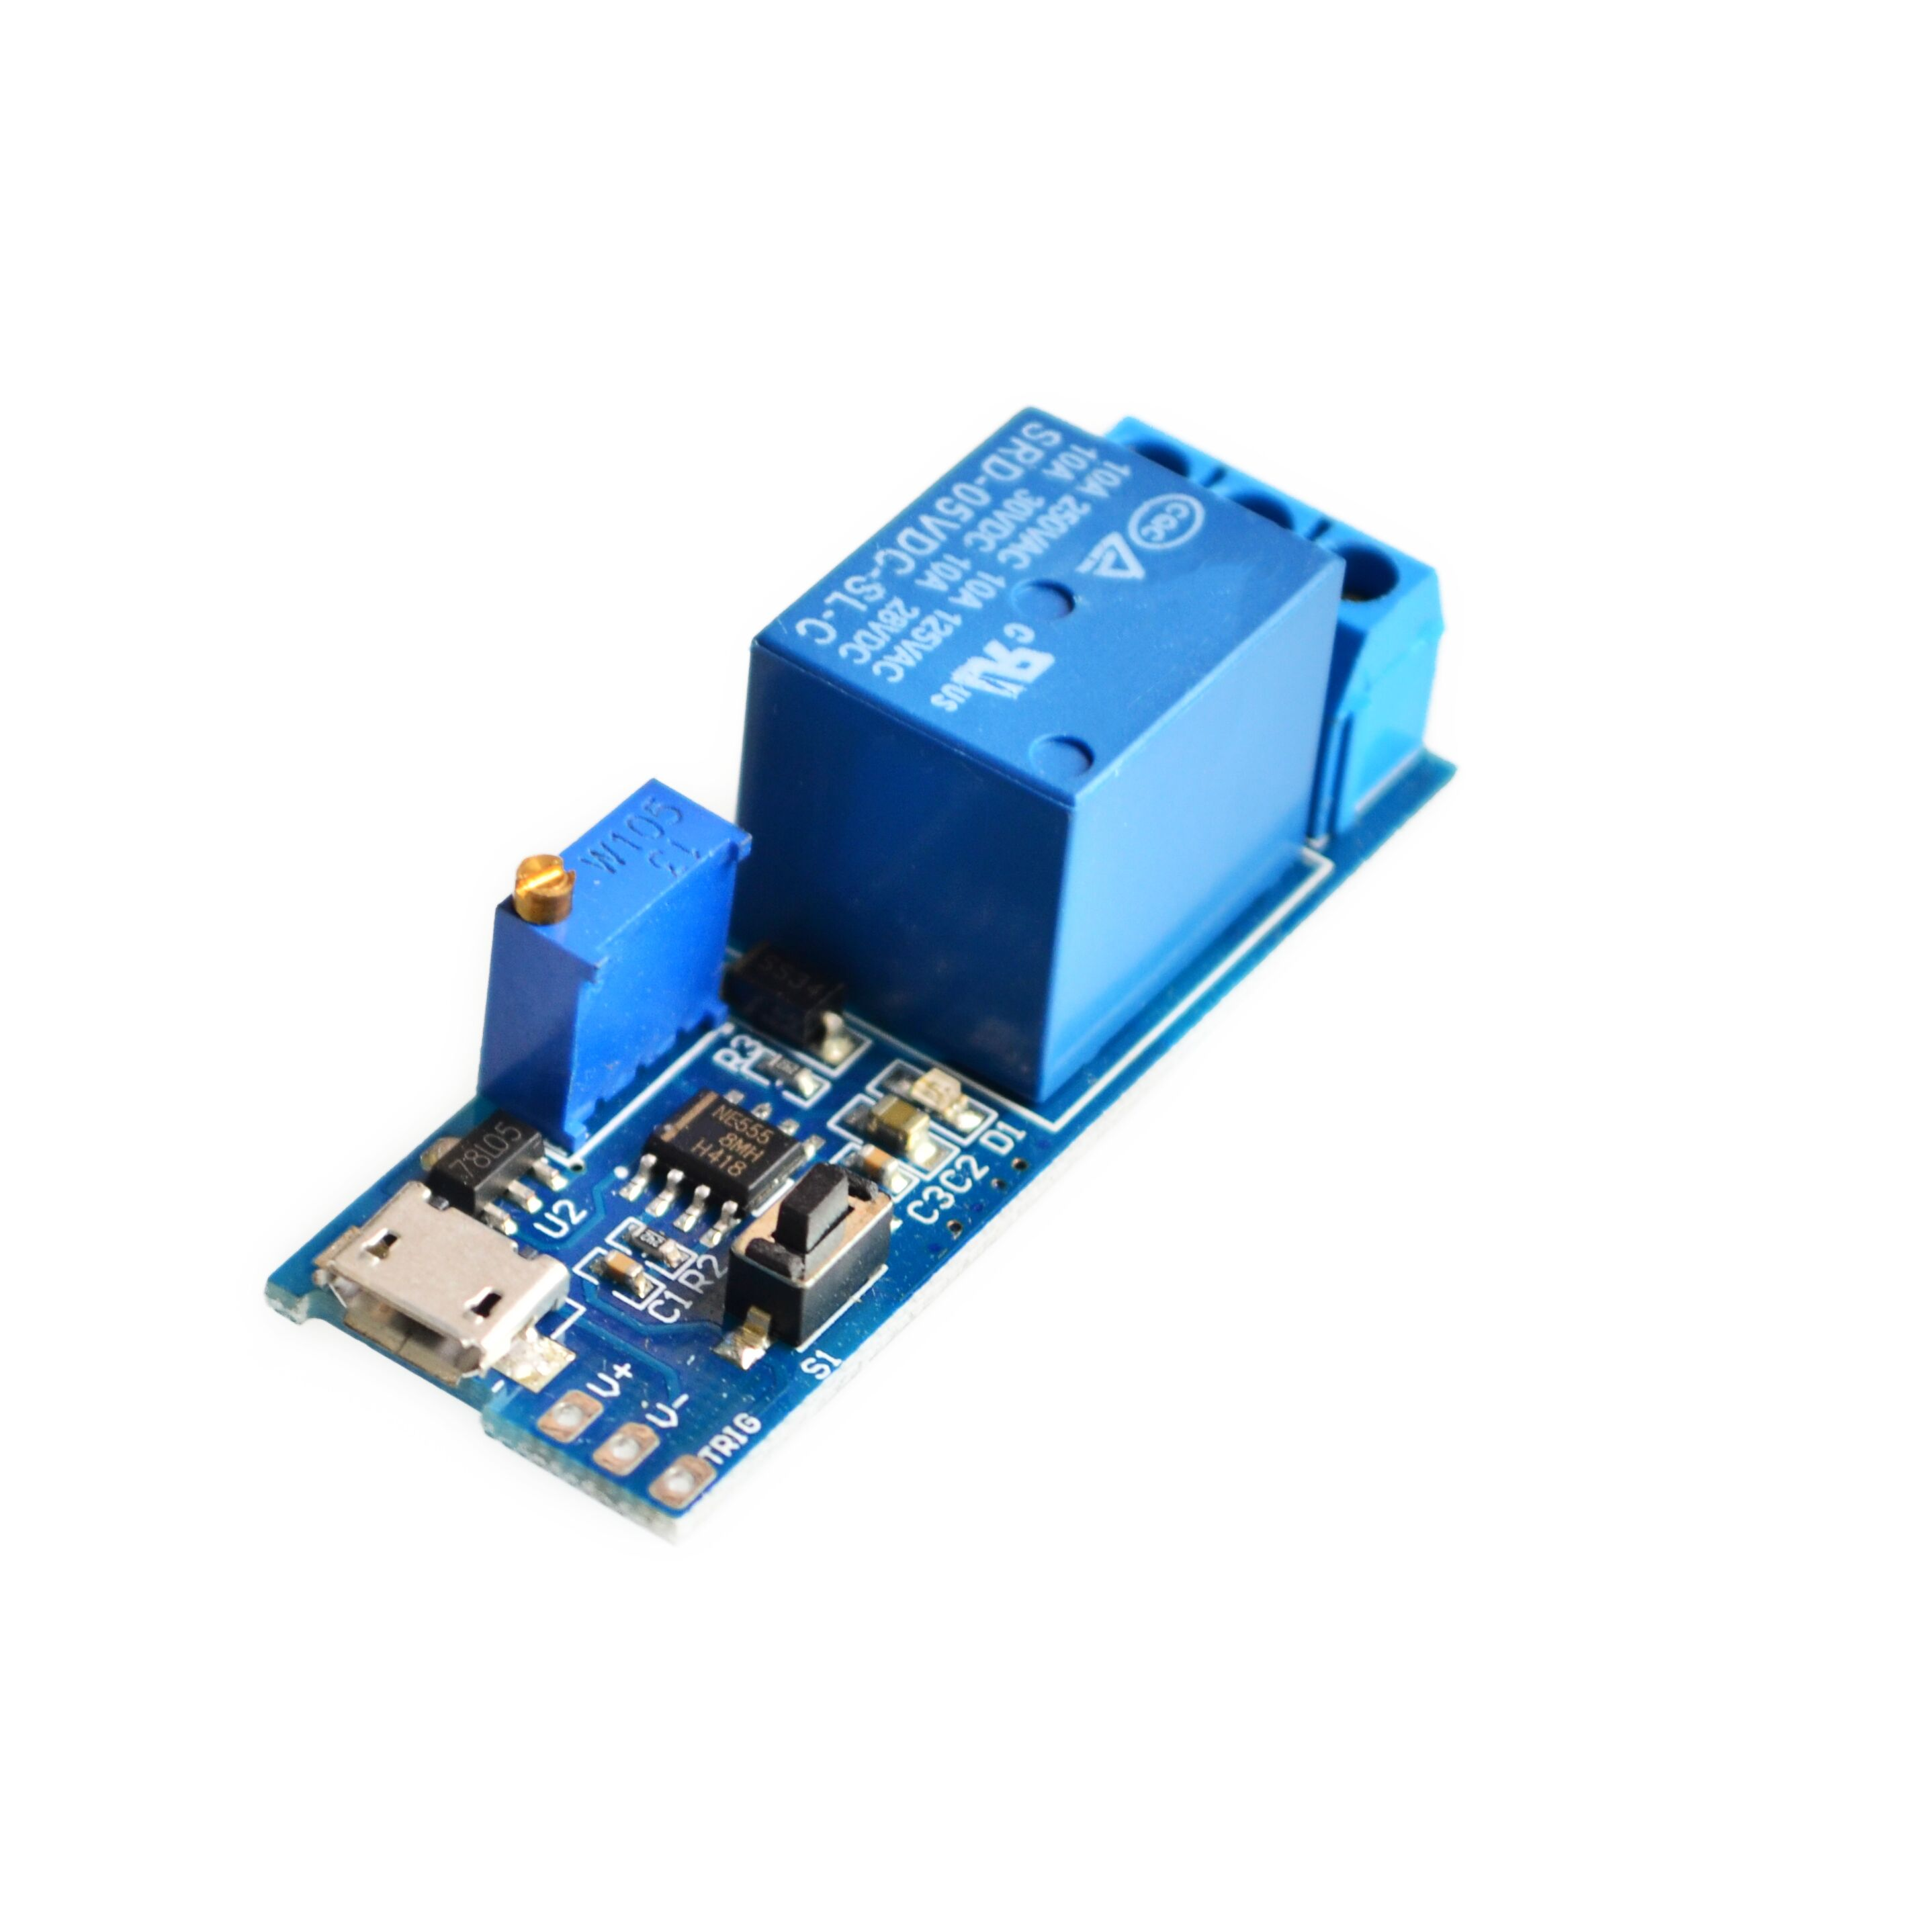 Detail Feedback Questions About 5v 30v Delay Relay Timer Module How To Build Toggle Circuit Using A 556 Trigger Switch Micro Usb Power Adjustable On Alibaba